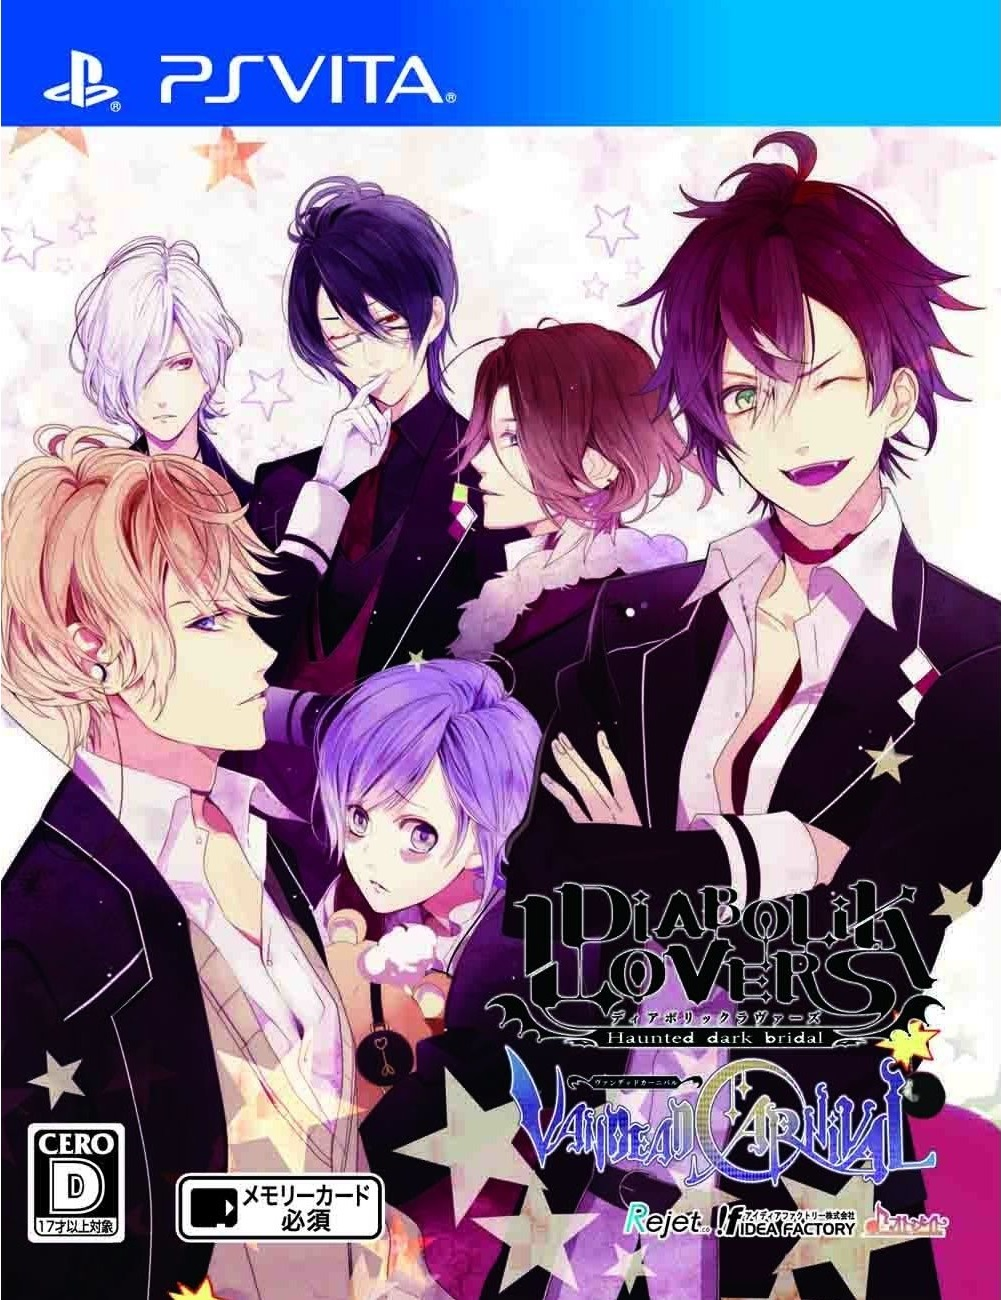 Anime Wallpaper For Ps Vita On The Seventh Day Of Fangirling 7 Diabolik Lovers